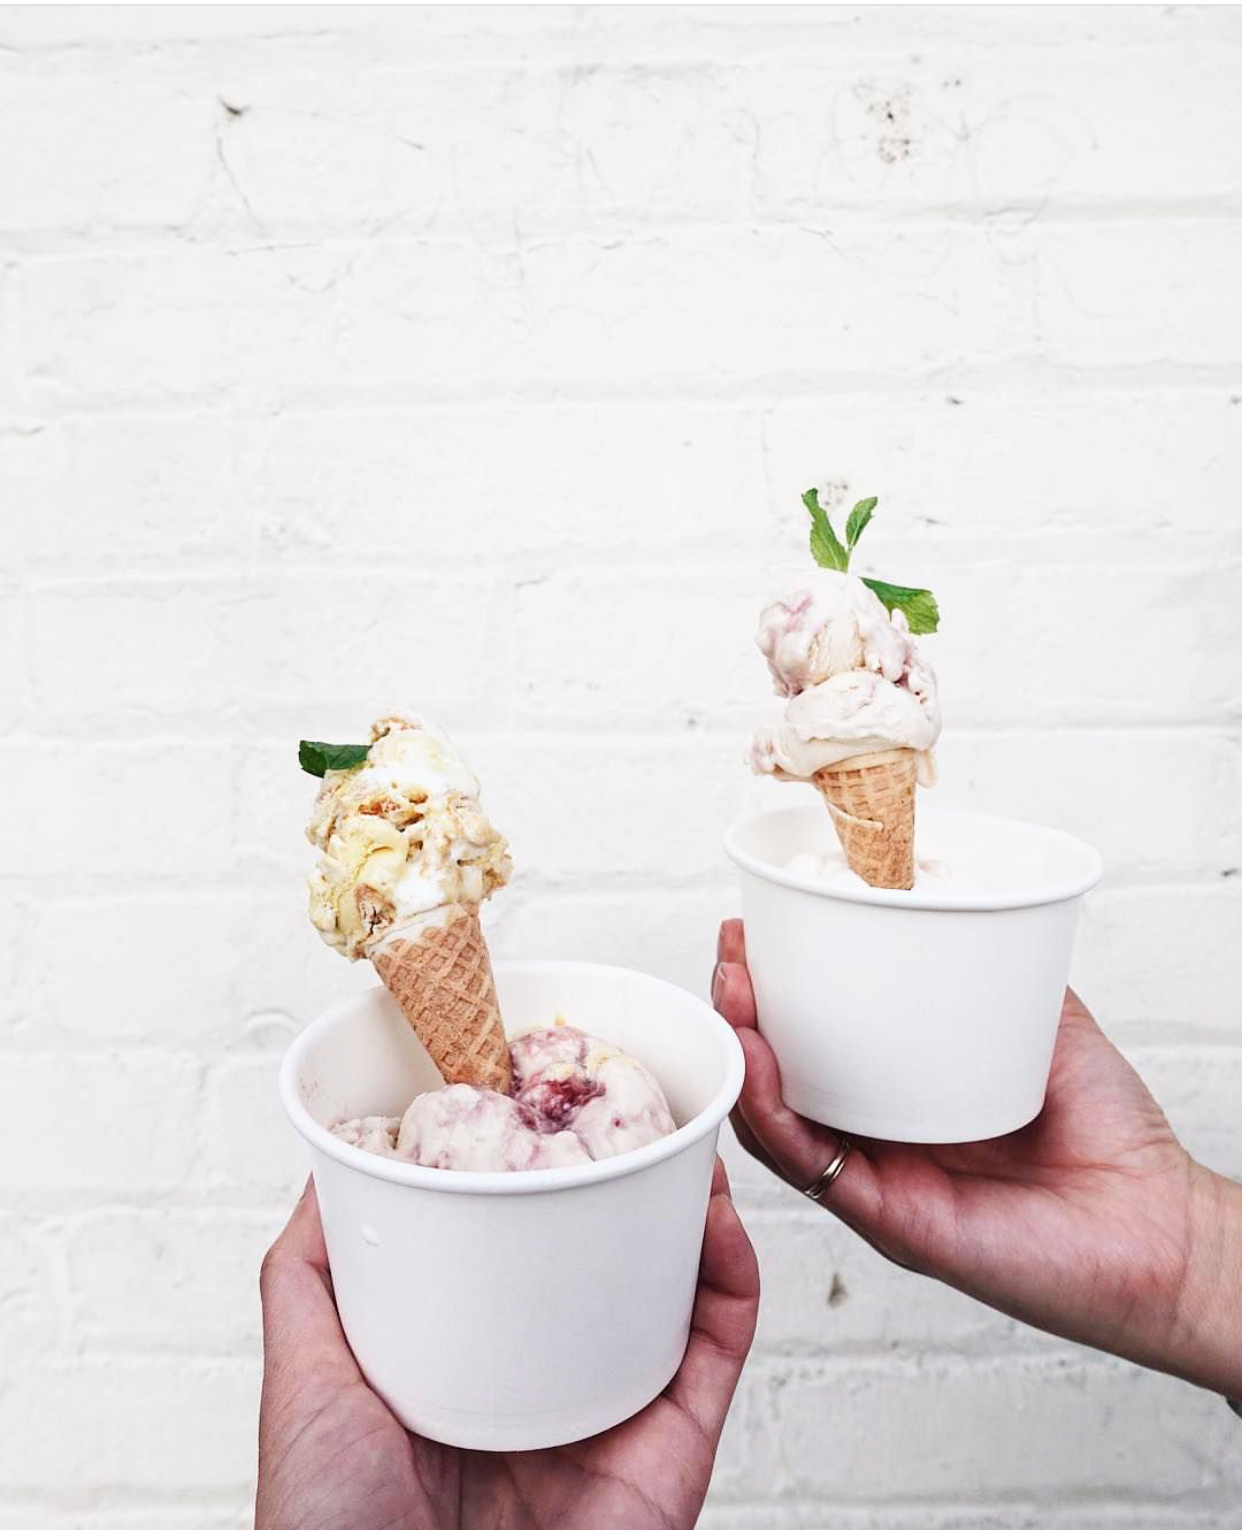 Milk Man's mini ice cream cone offerings | photo courtesy of @alliosn on instagram